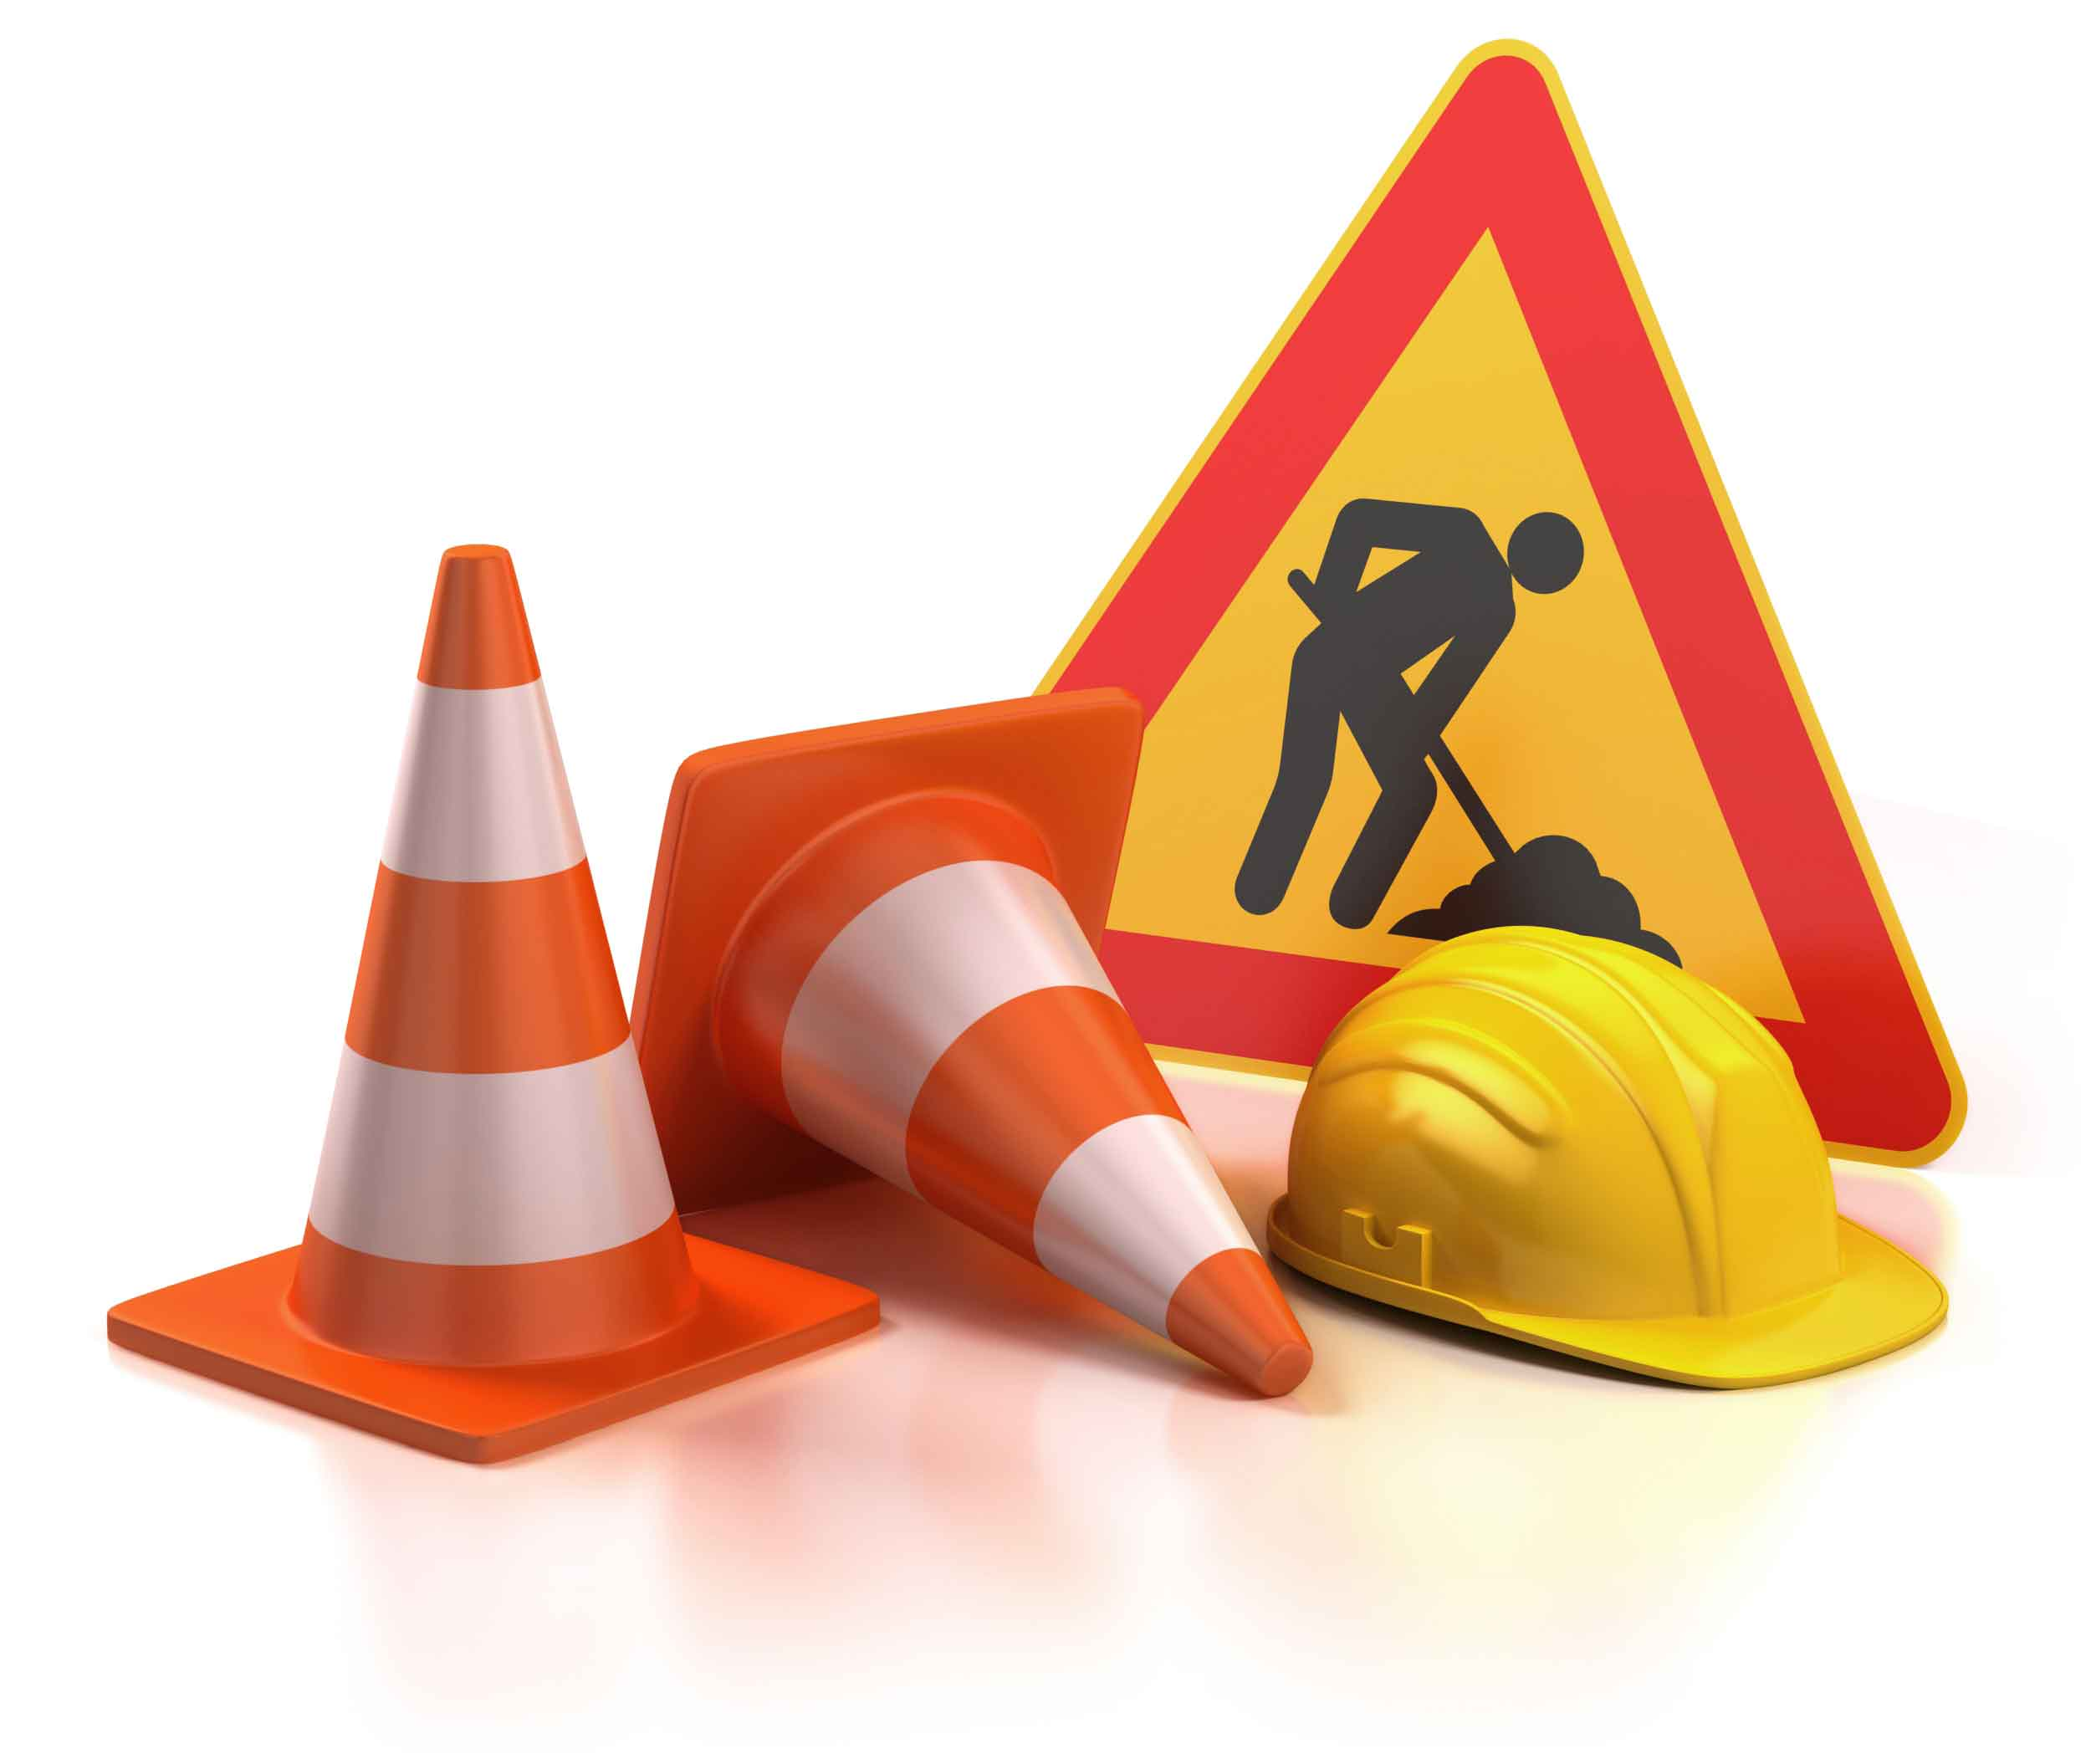 cones-and-sign.jpg